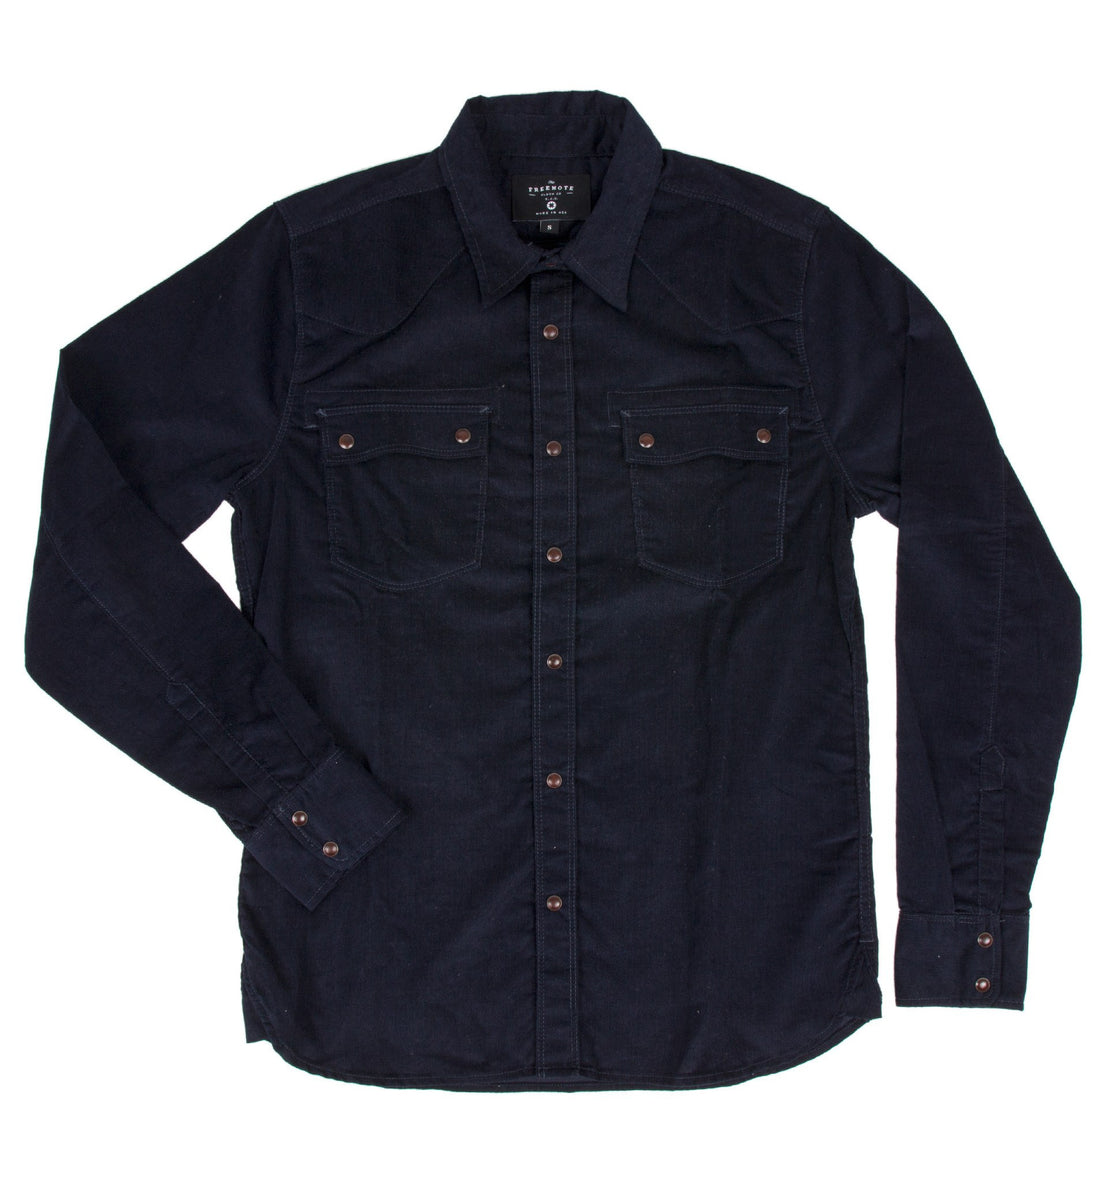 Freenote Modern Western Corduroy Shirt - Tops - Iron and Resin